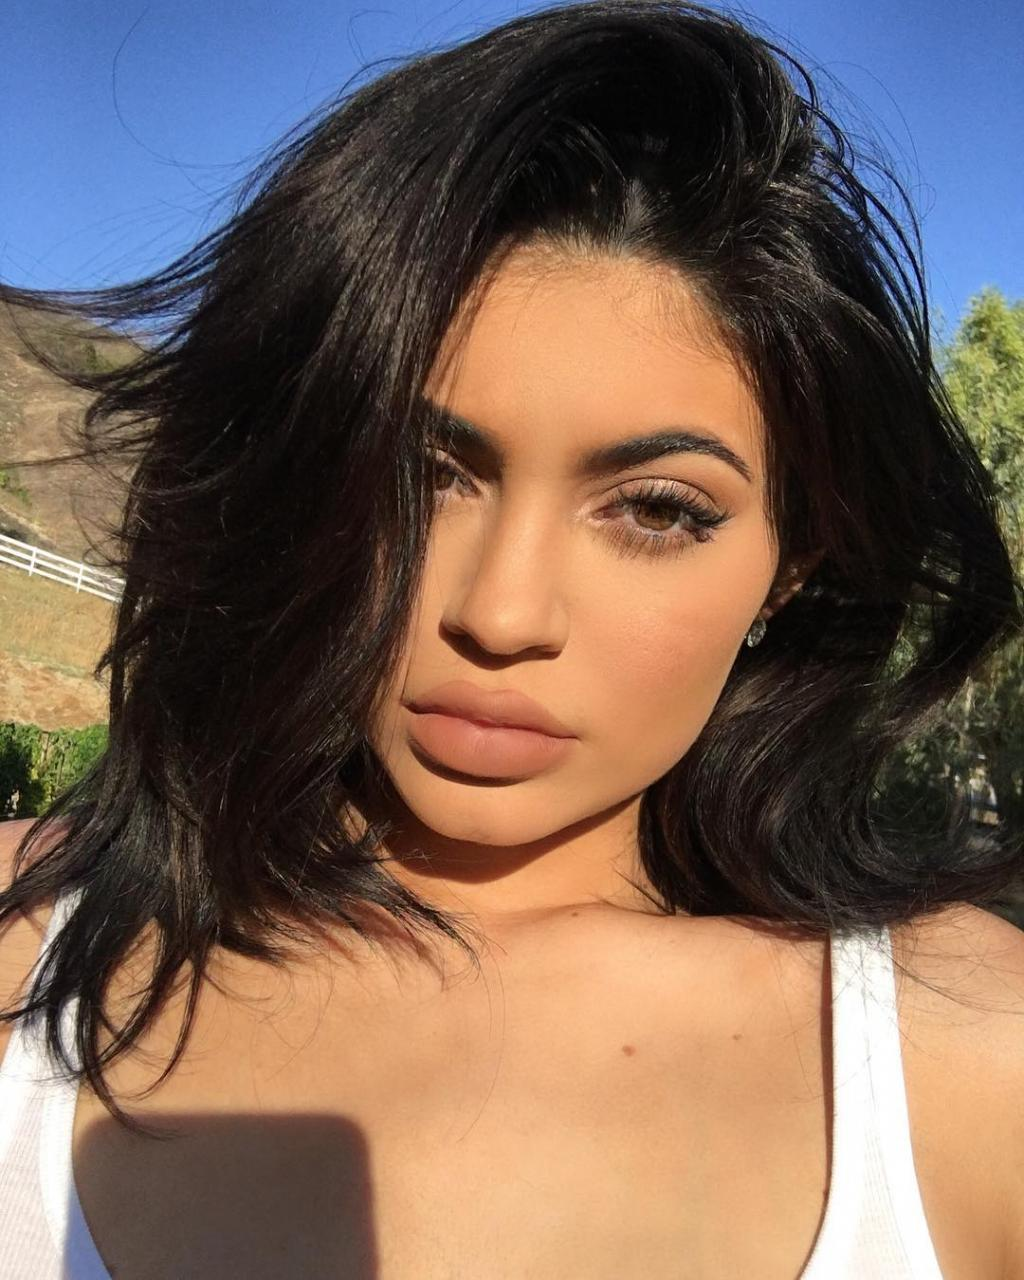 Kylie Jenner Puts N!pples On Display To Promote New Lip Kit -PHOTO!